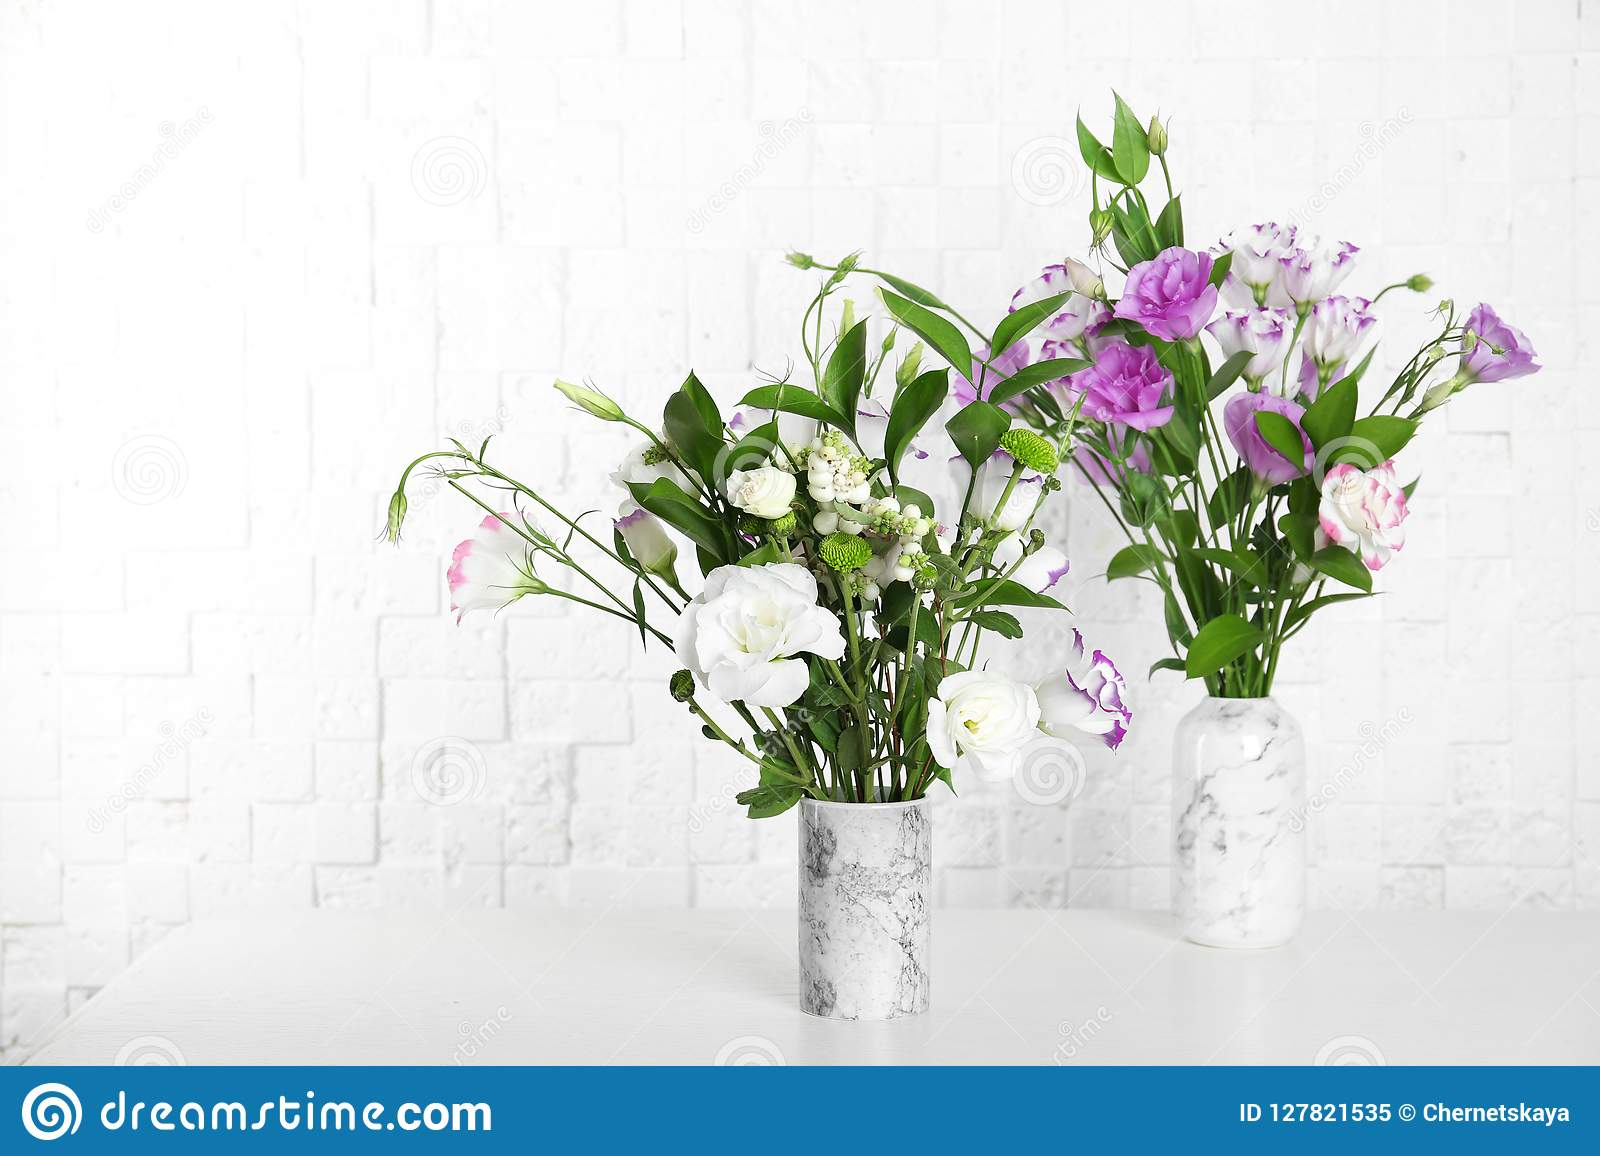 Vases with beautiful flowers on table stock image image of aroma vases with beautiful flowers on table izmirmasajfo